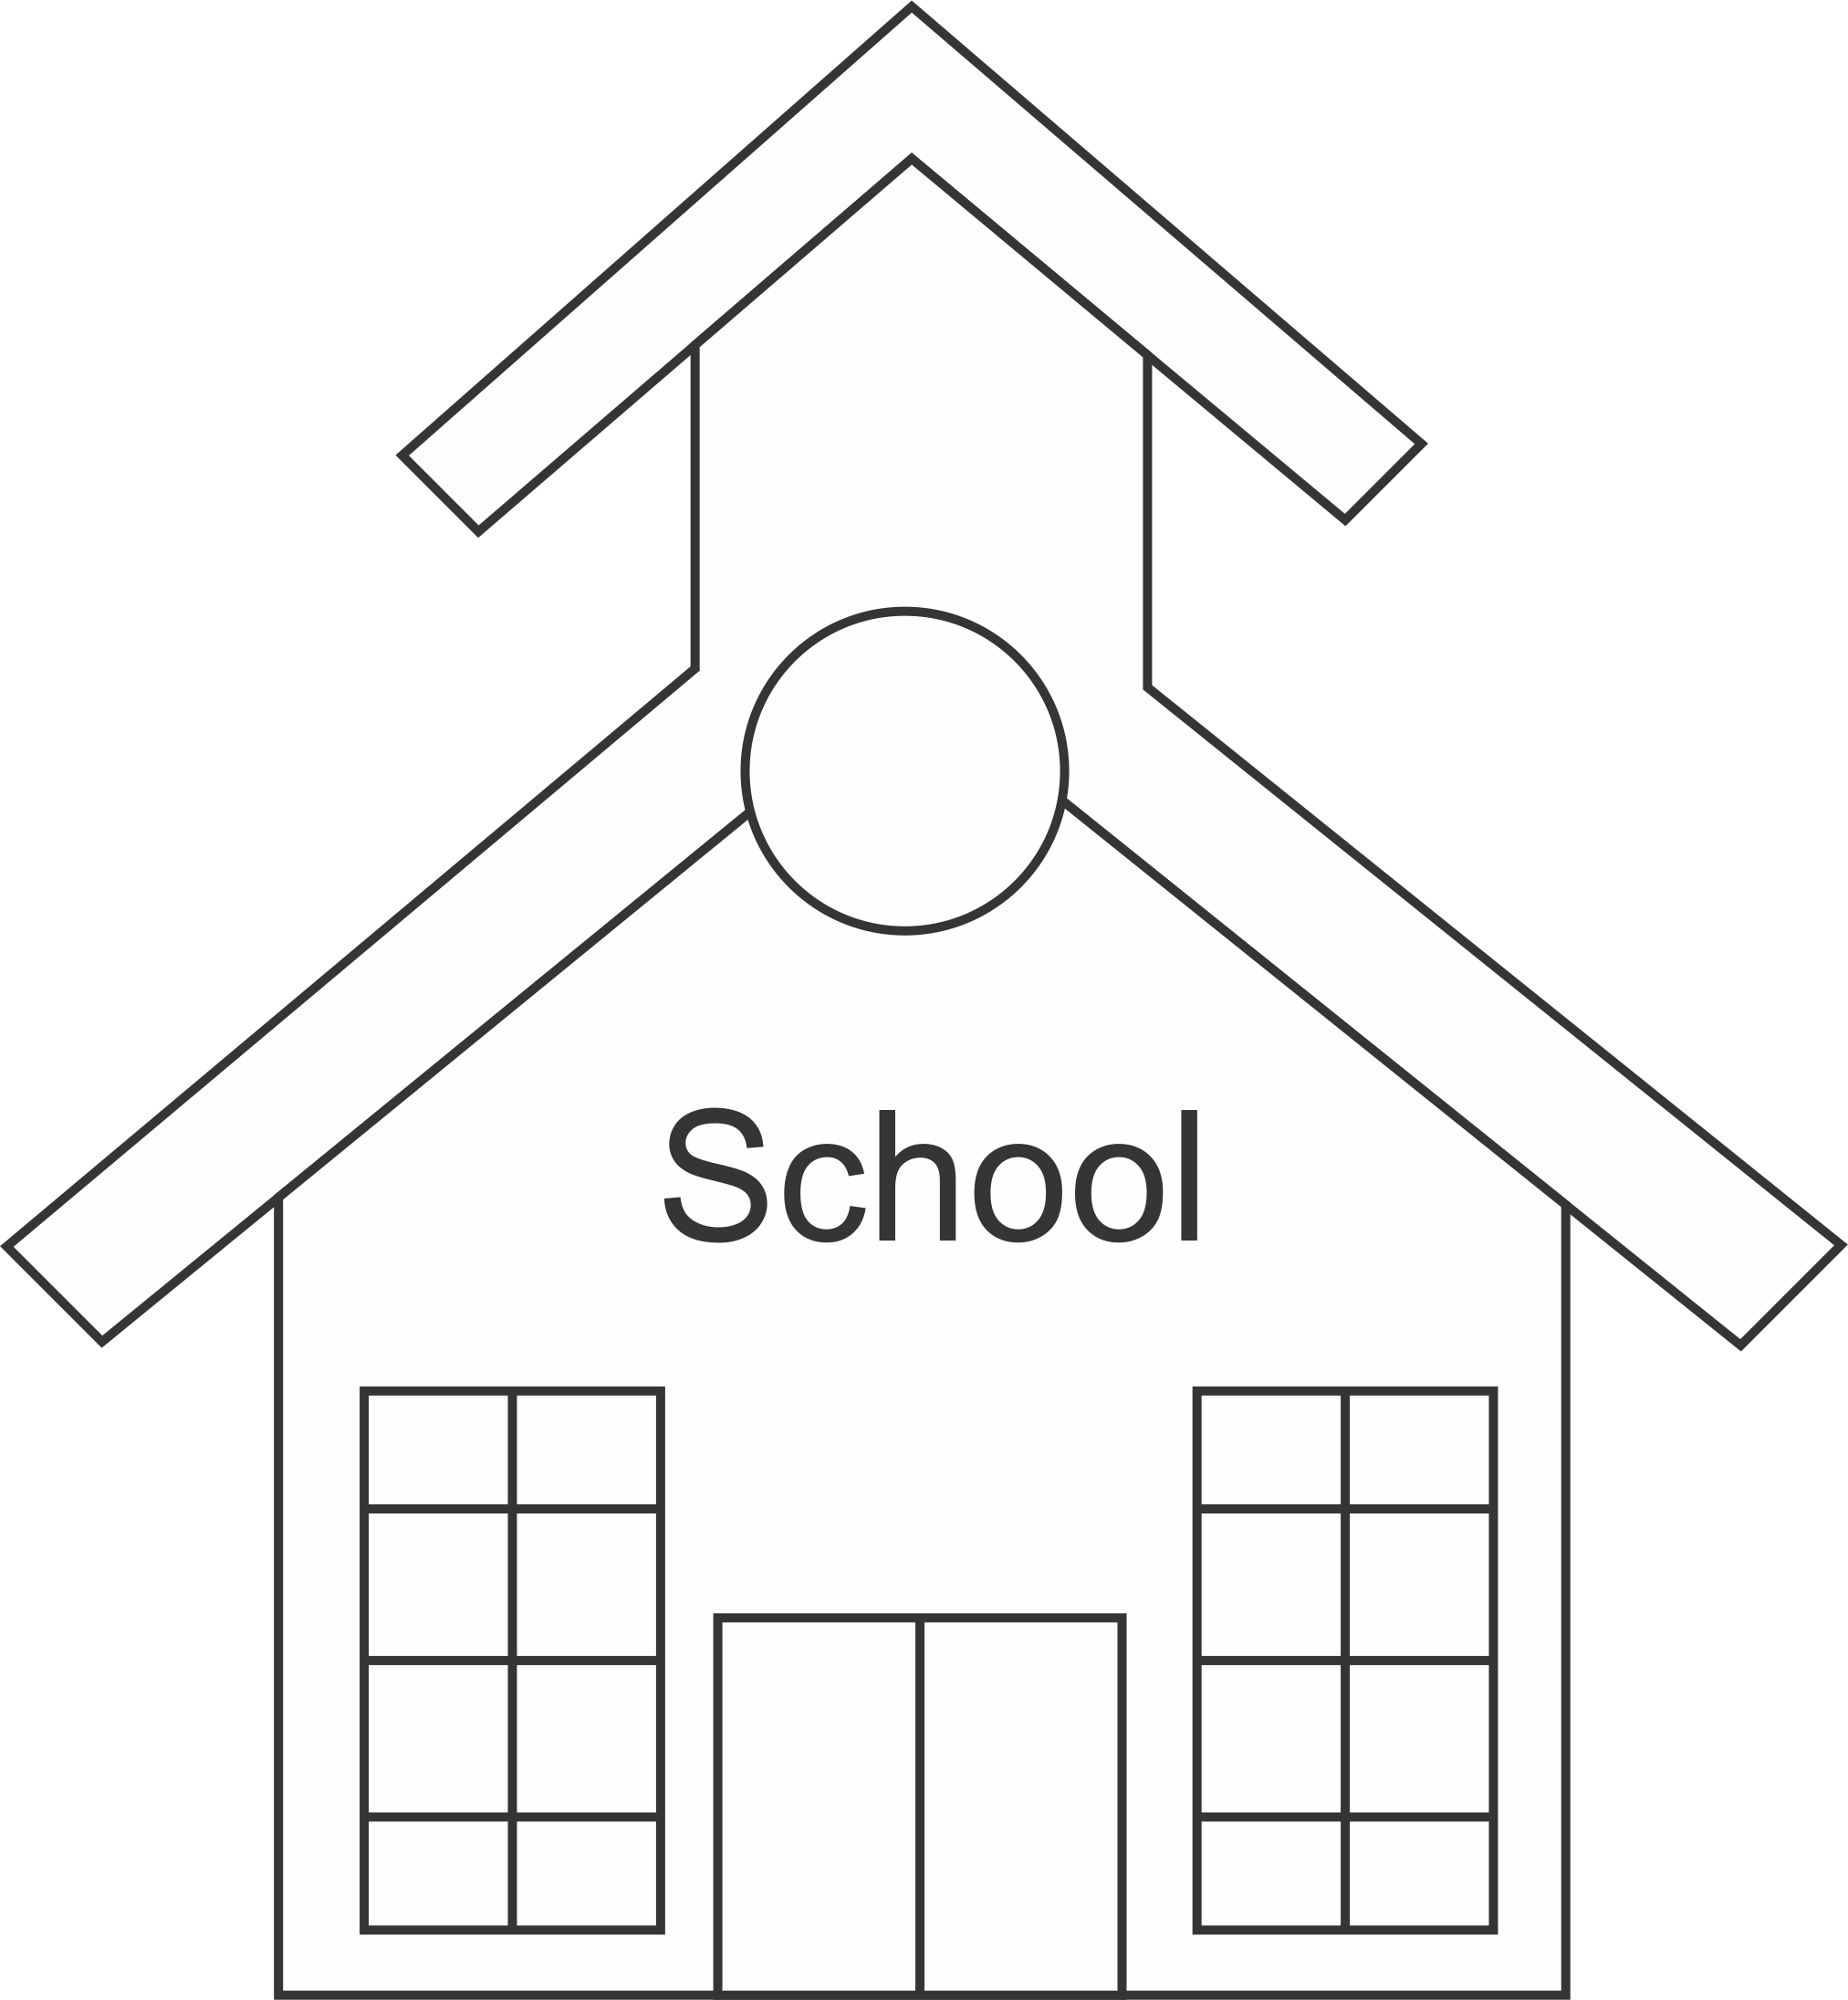 Free School Cliparts Outline, Download Free Clip Art, Free